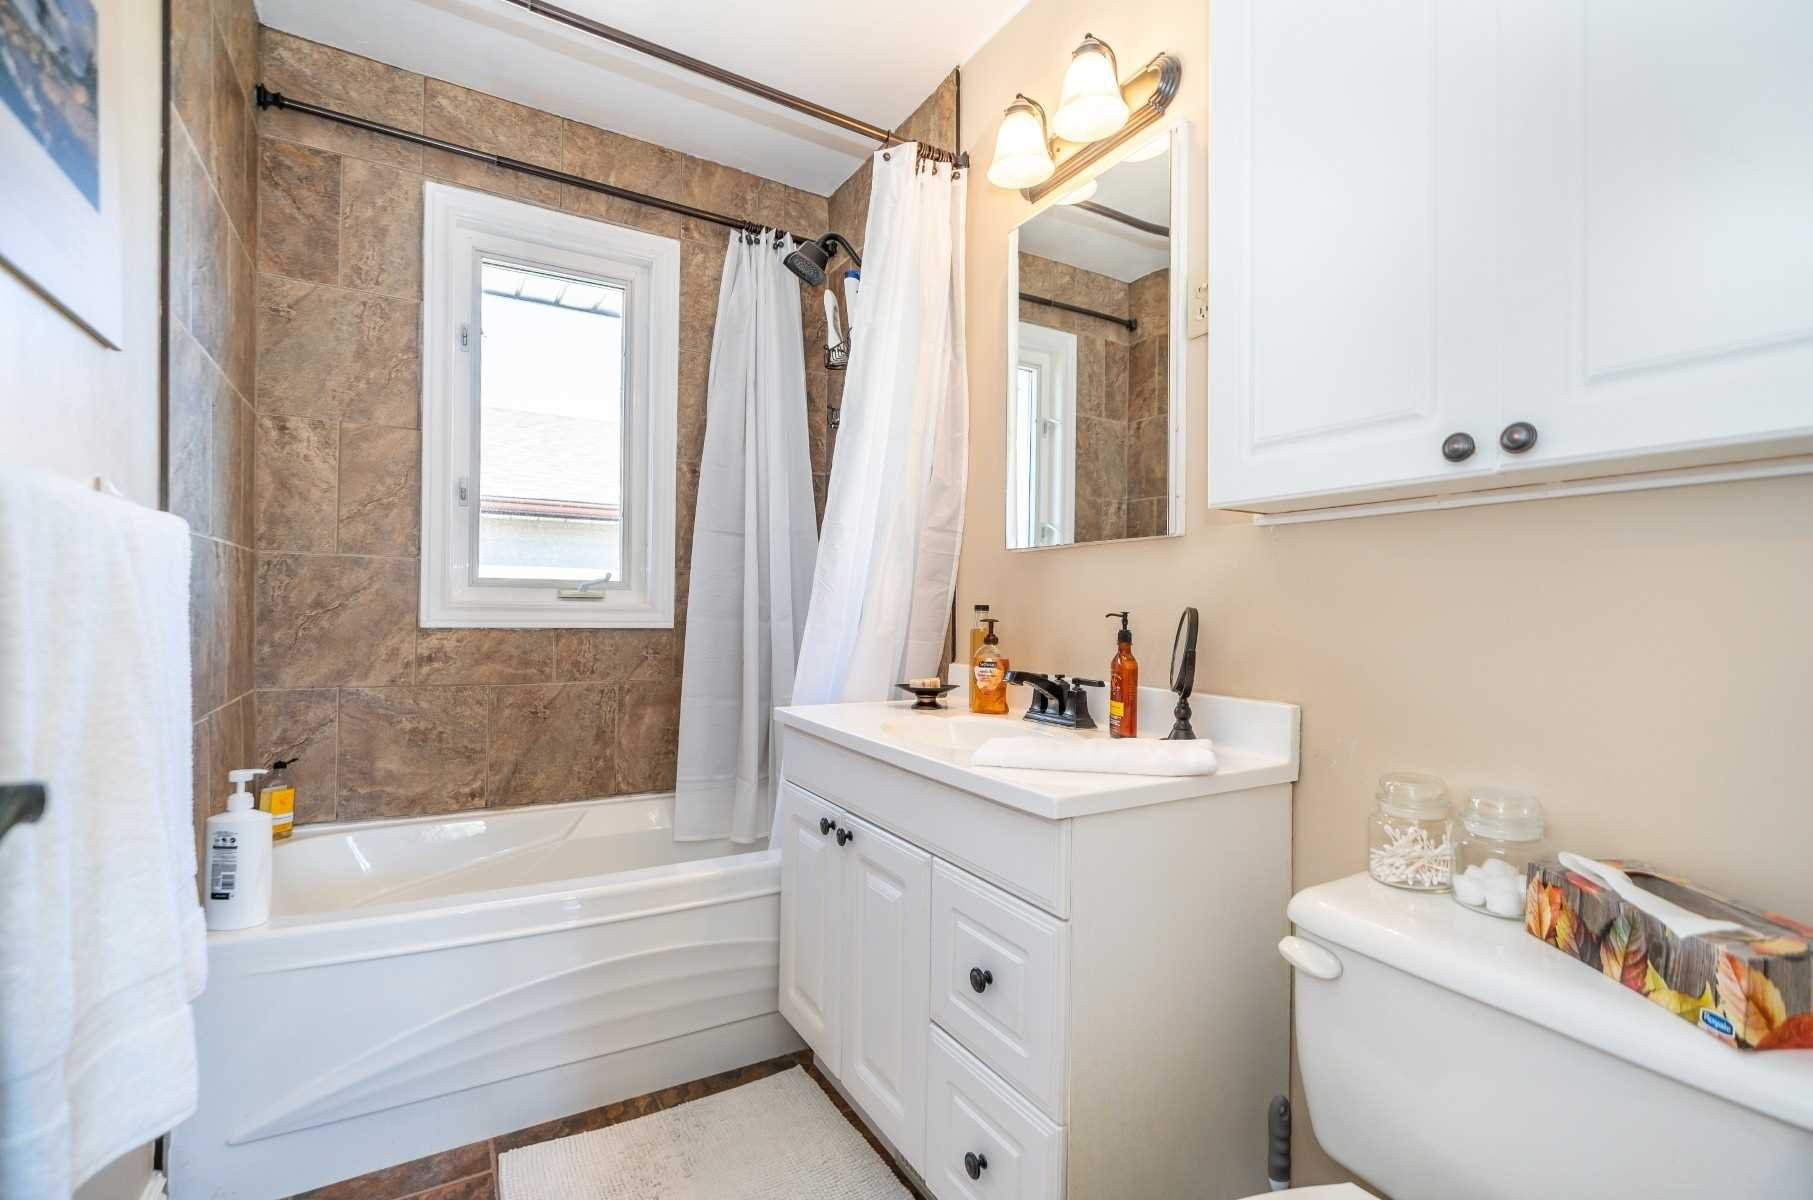 Photo 37: Photos: 40 Eastlawn Street in Oshawa: Donevan House (Bungalow) for sale : MLS®# E4769026